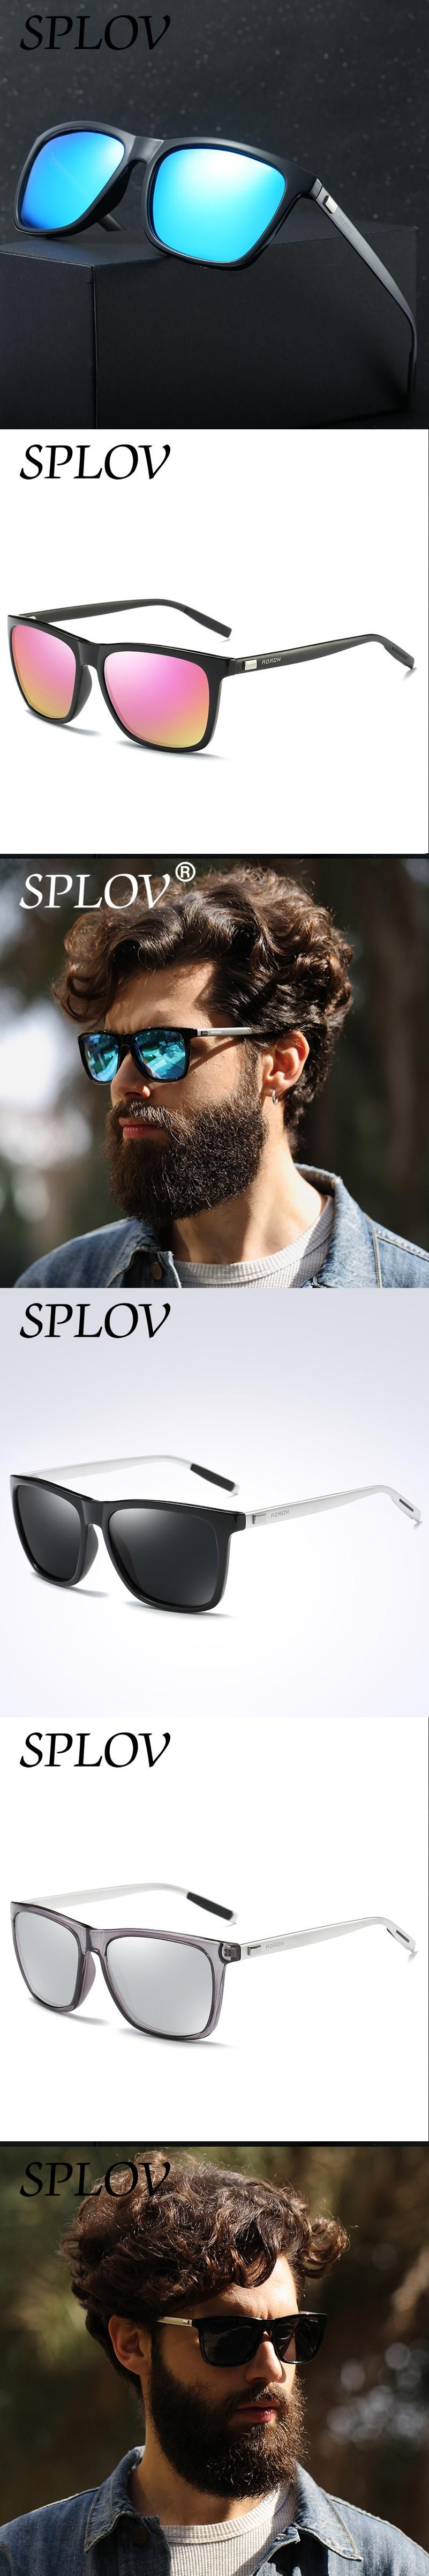 bf5a2aa778 Aluminum Magnesium Polarized Sunglasses Colour Fashion Mirror Oval Driving  Men s Sun Glasses Eyewears Accessories For Men